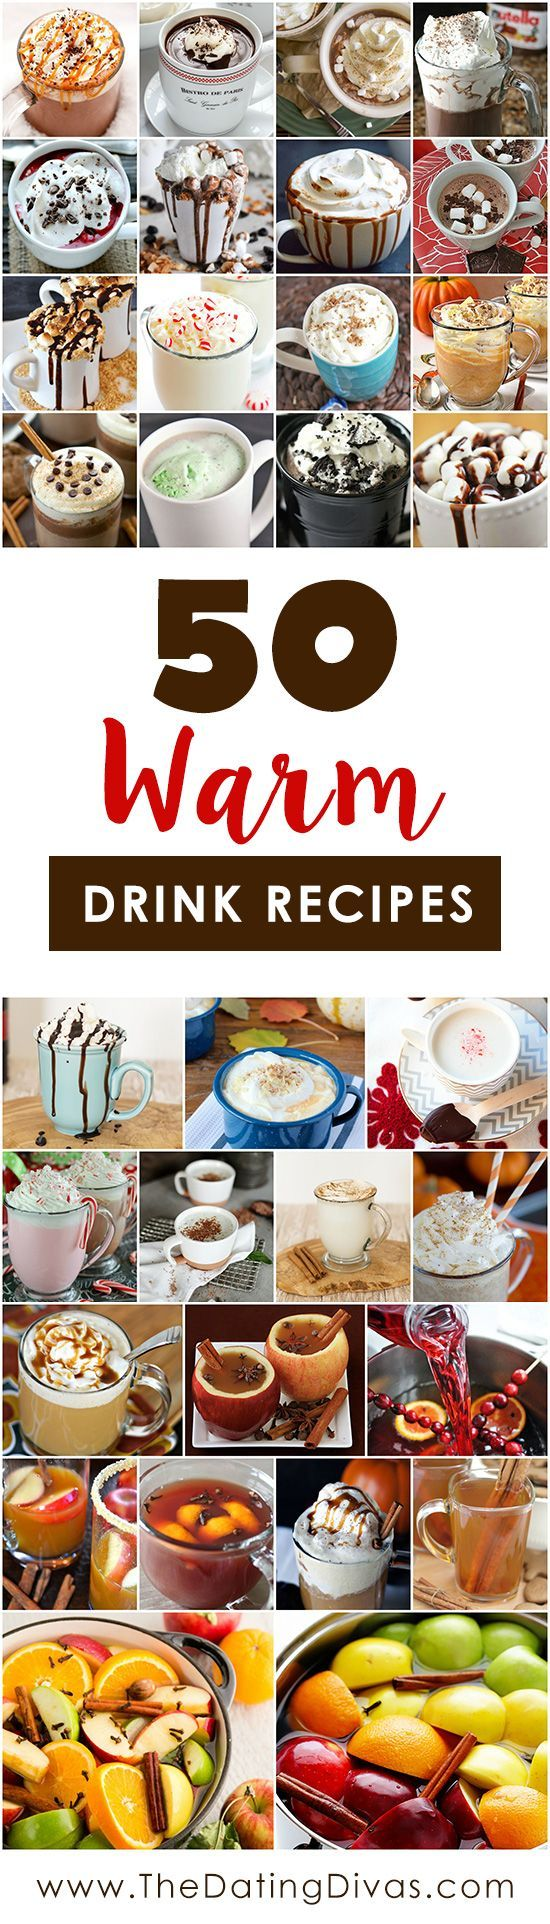 Delicious Warm Drink Recipes! Cozy Cocoa, Cider, and Steamer recipes for chilly days.